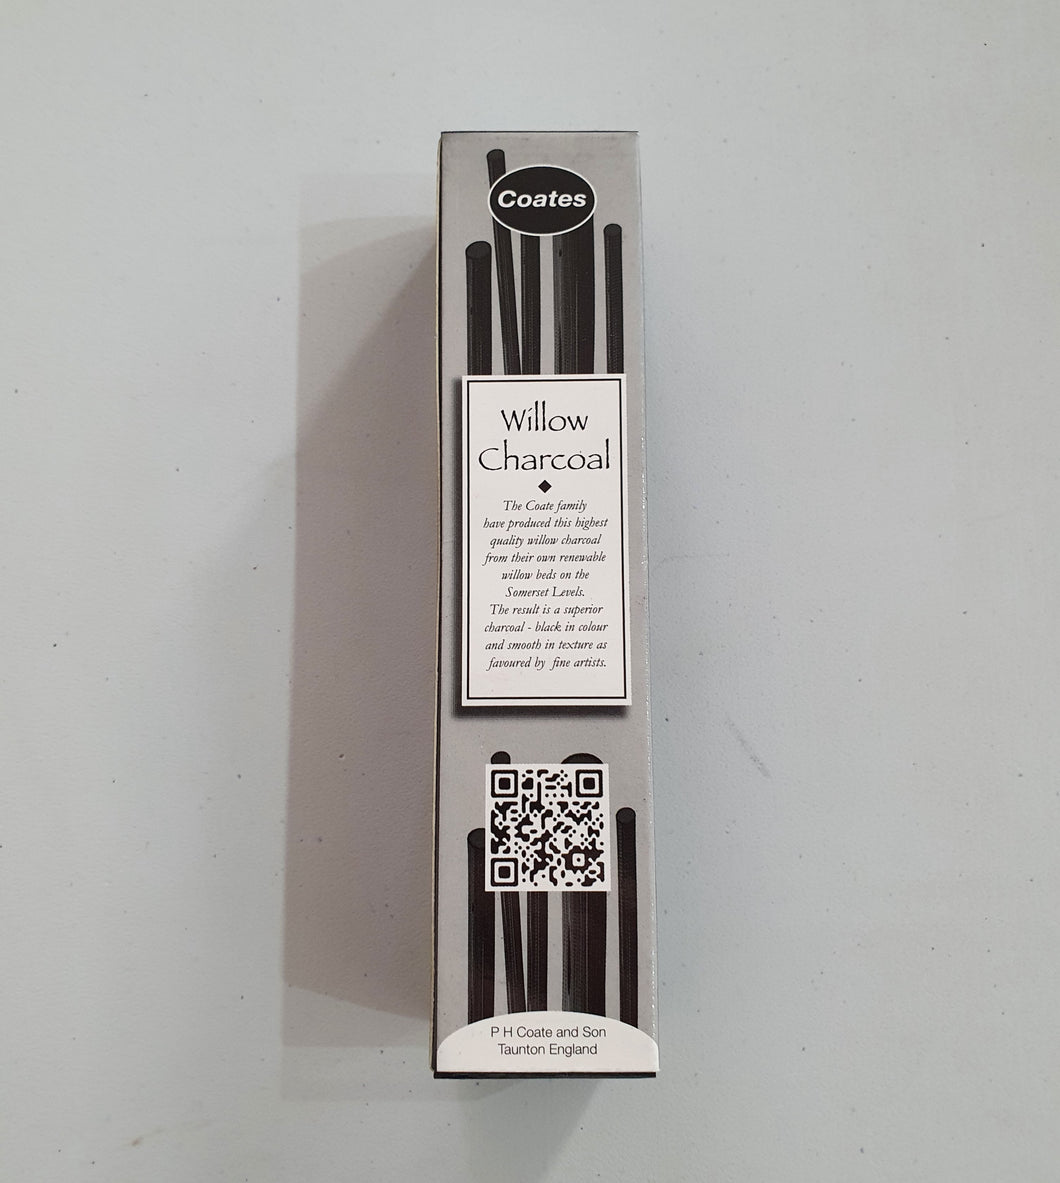 Coates Willow Charcoal - 30 Pieces